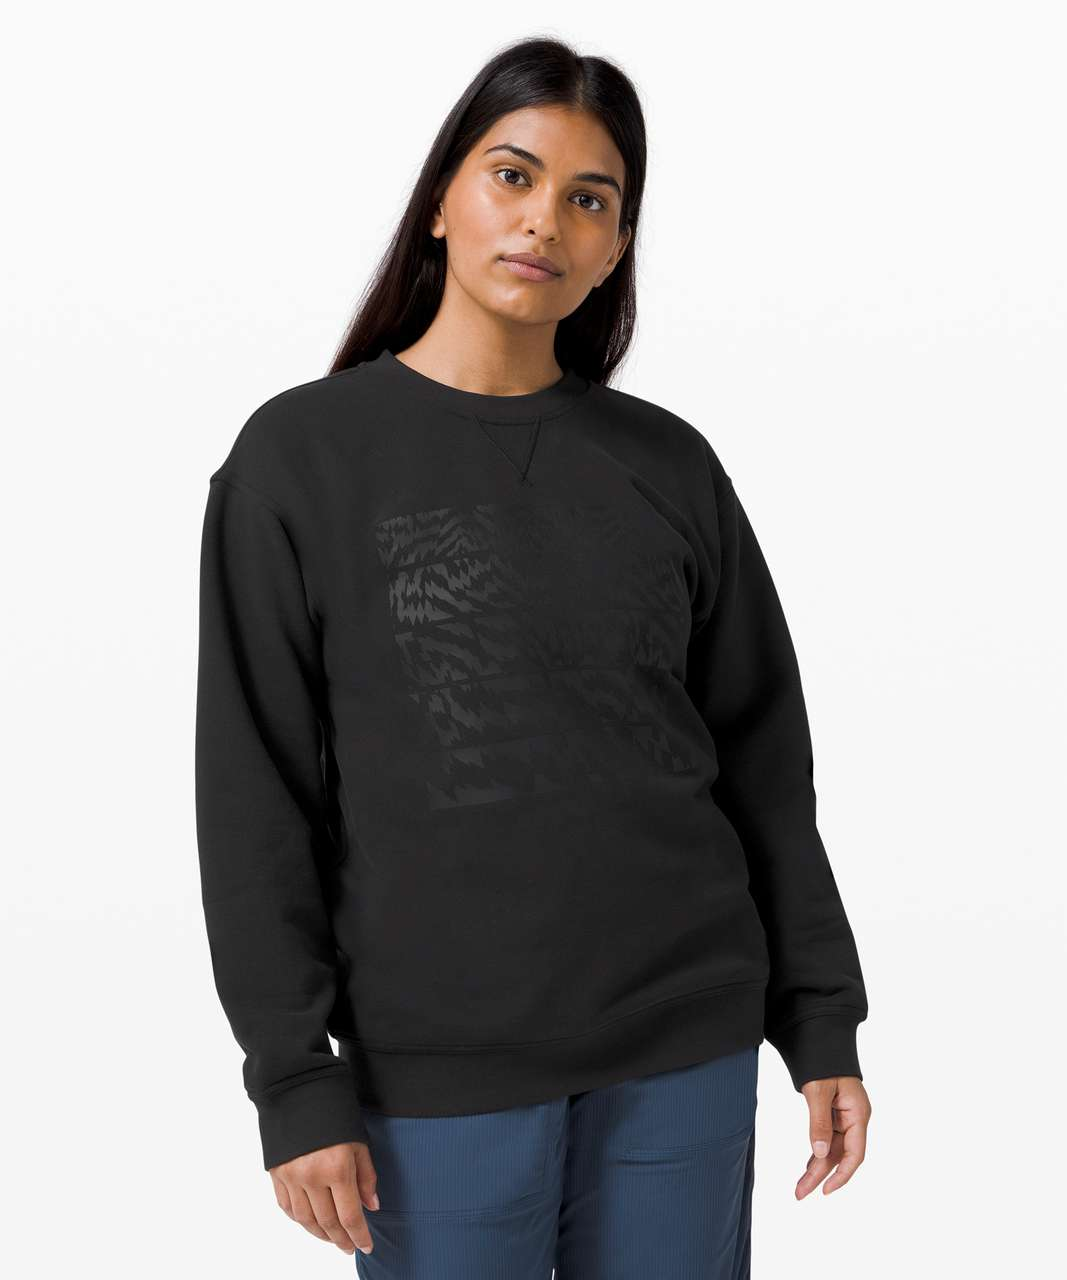 Lululemon All Yours Crew *Graphic - Black